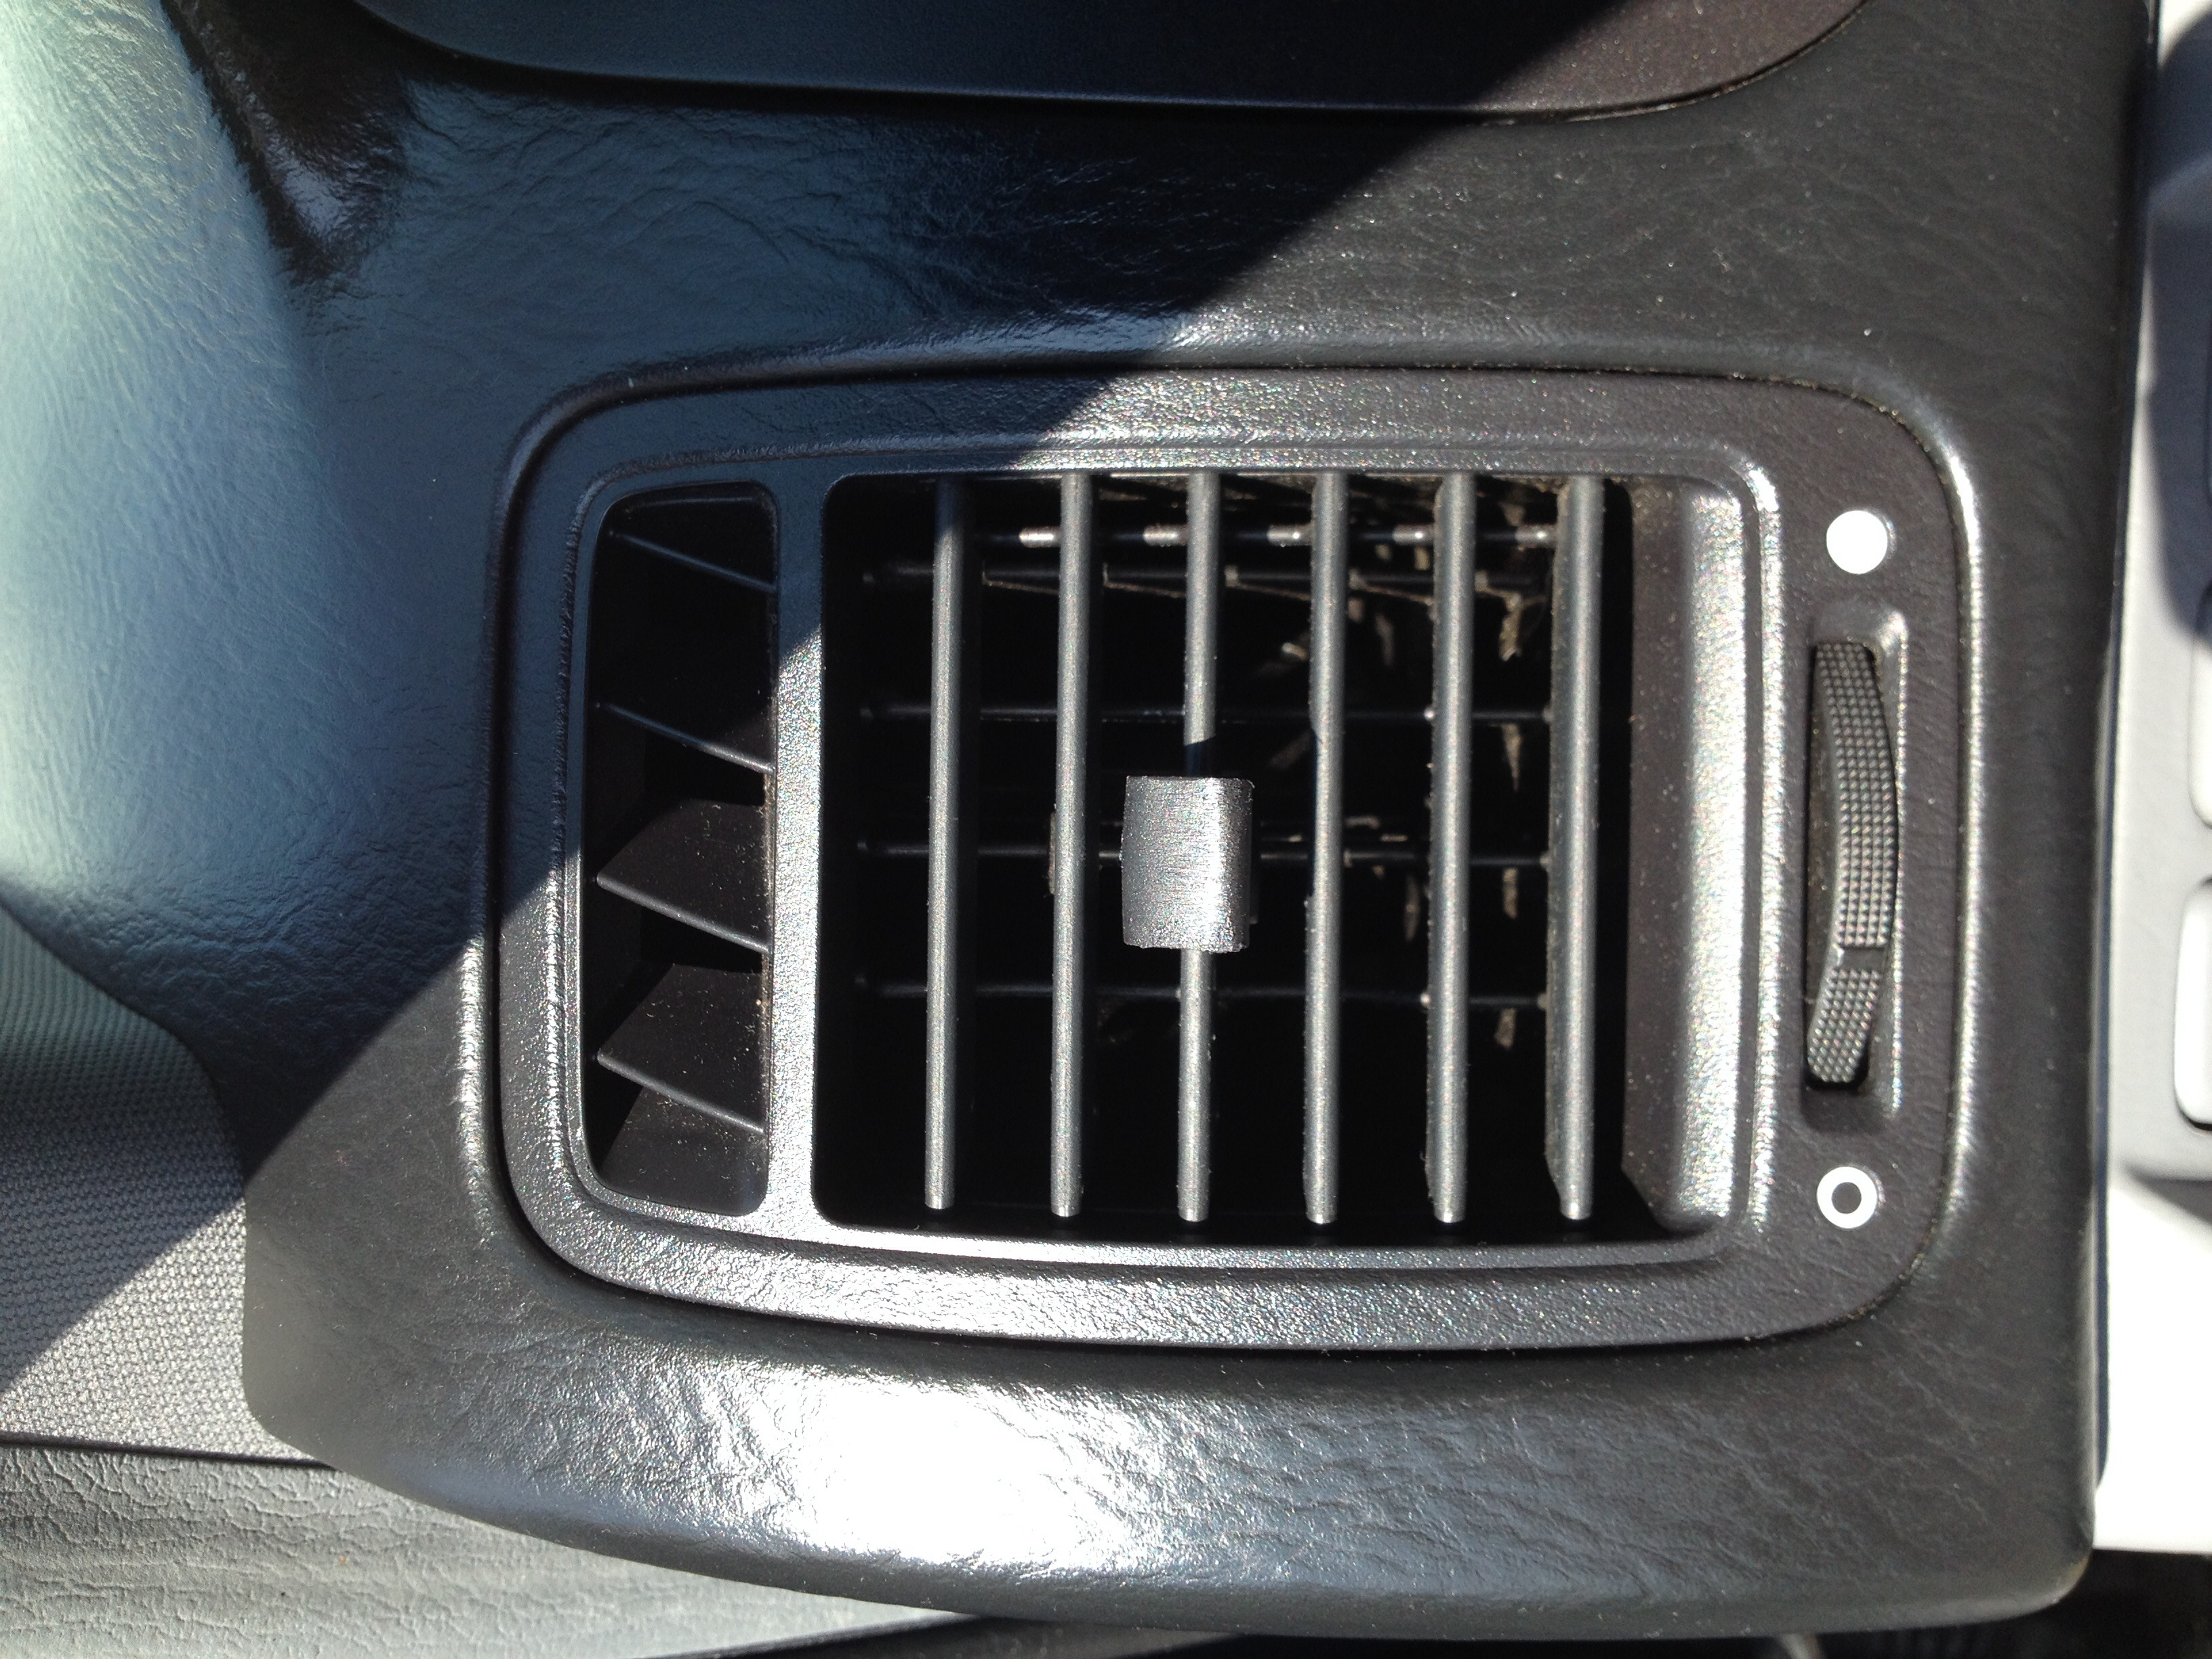 Air Vent Clips missing-image.jpg